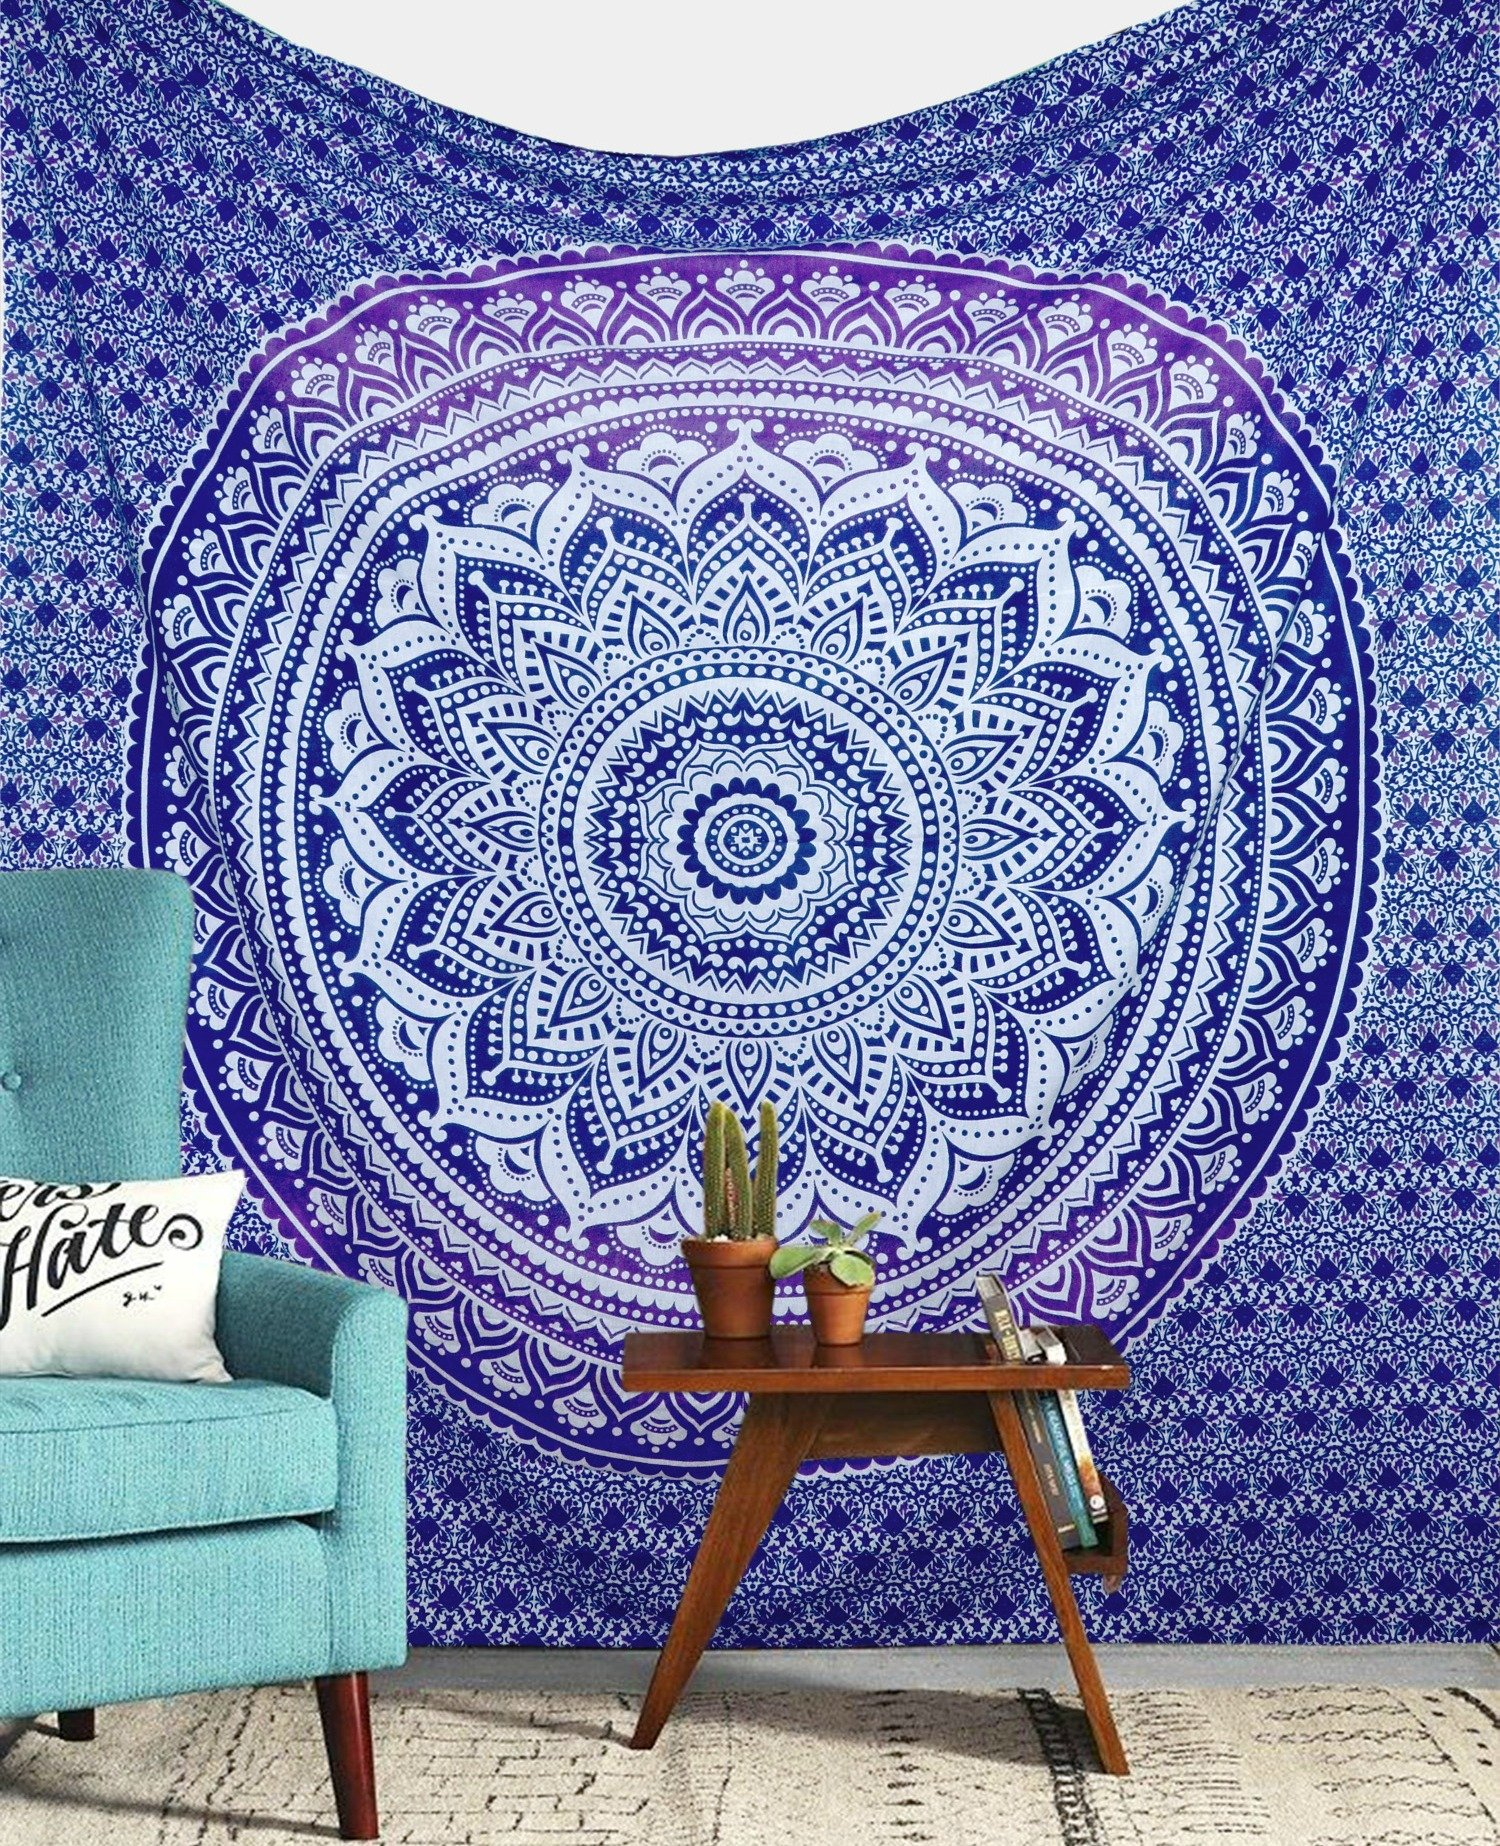 Purple Ombre Tapestry Wall hanging College Dorm Tapestry Mandala Tapestry Dorm Decor Indian Hippie Tapestry Bohemian Bedspread Bedding Beach Tapestry Decor by Jaipur Handloom